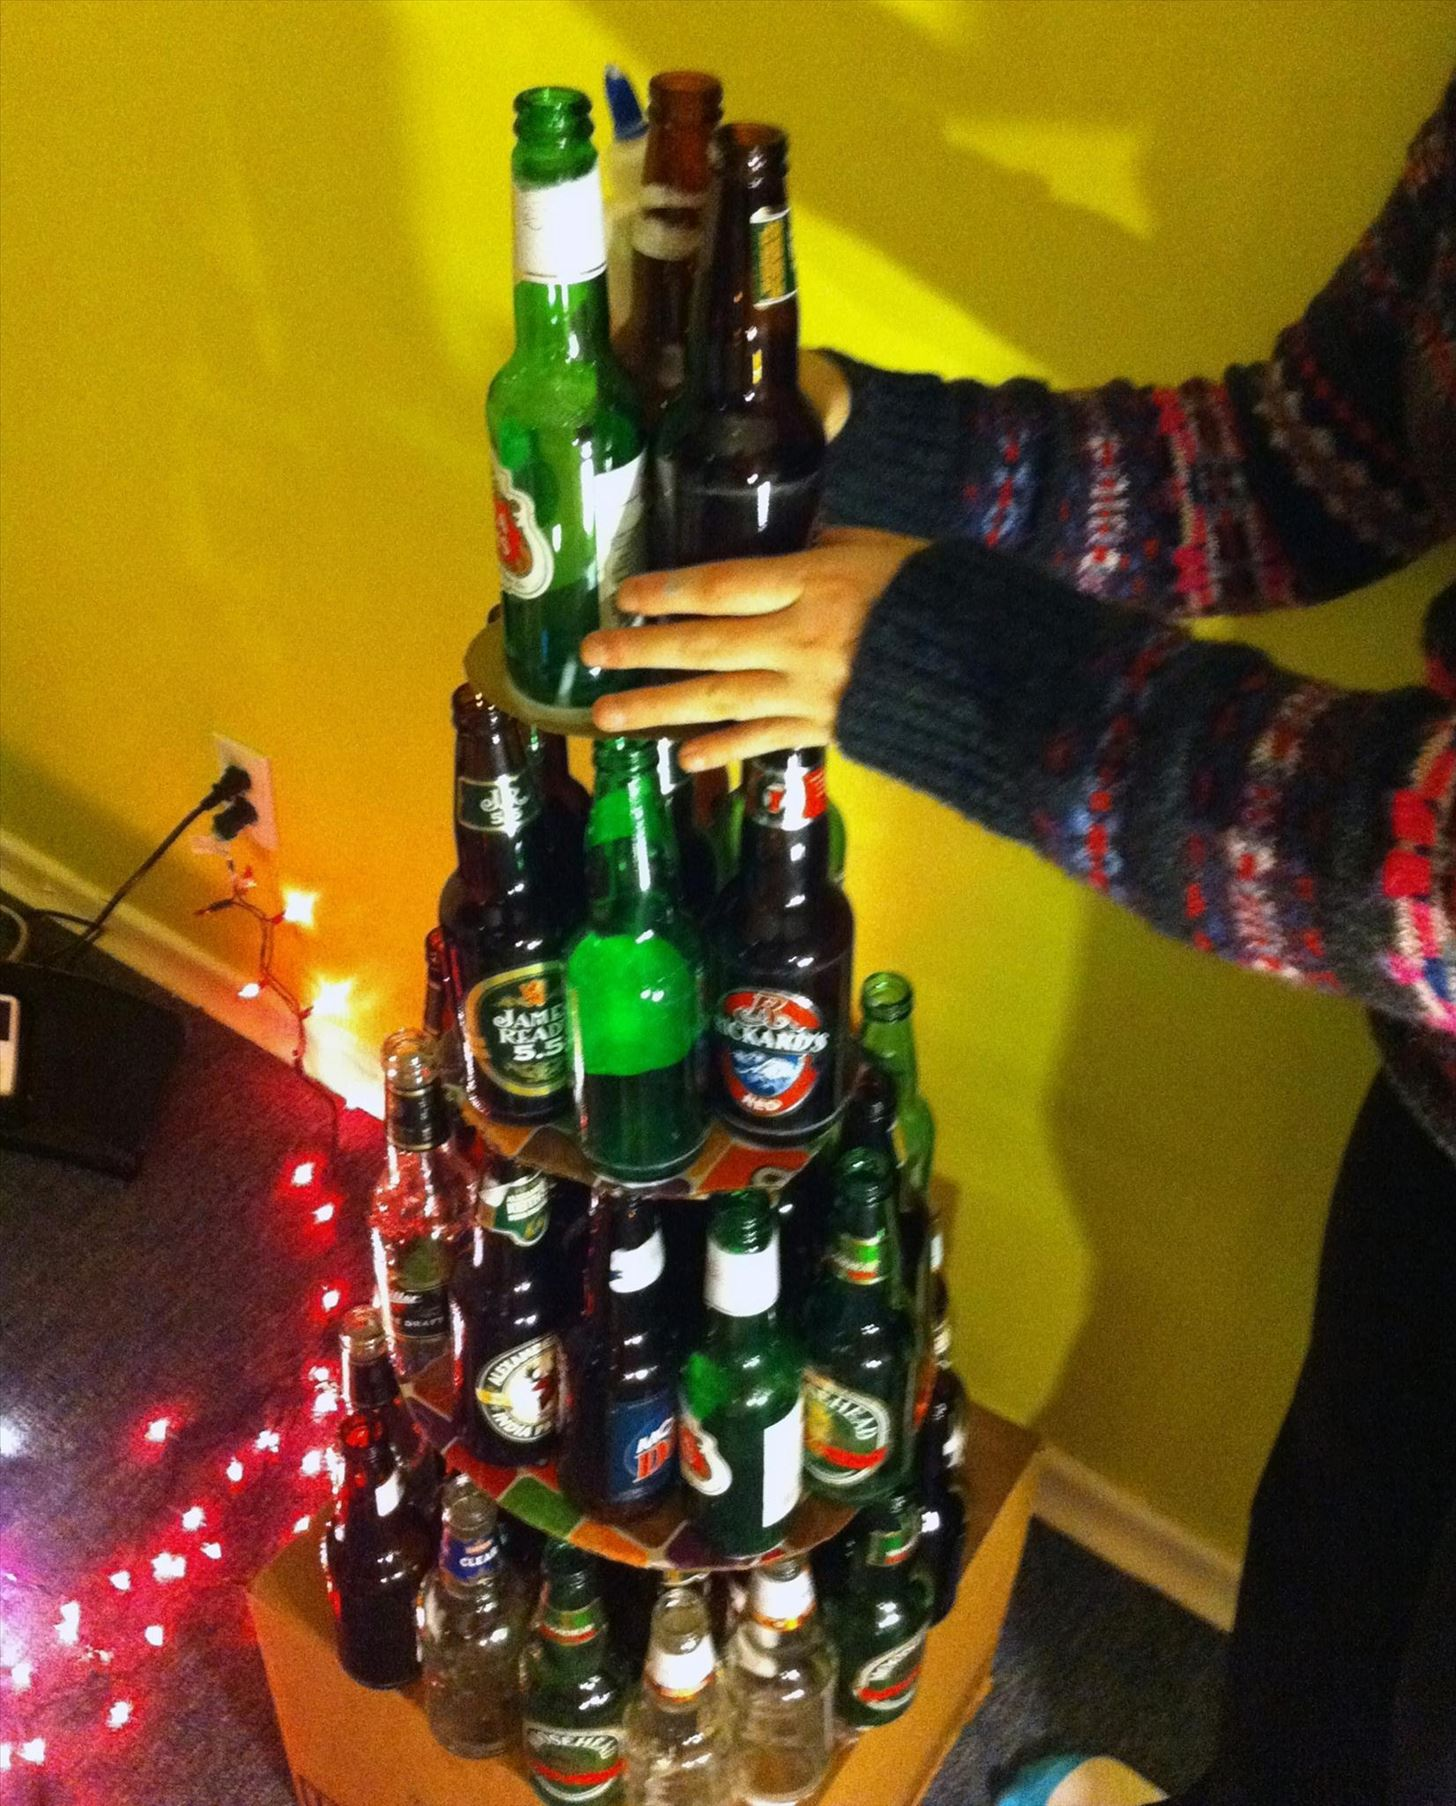 Don't Like Traditional Christmas Trees? Try Out One of These 7 Festive DIY Alternatives